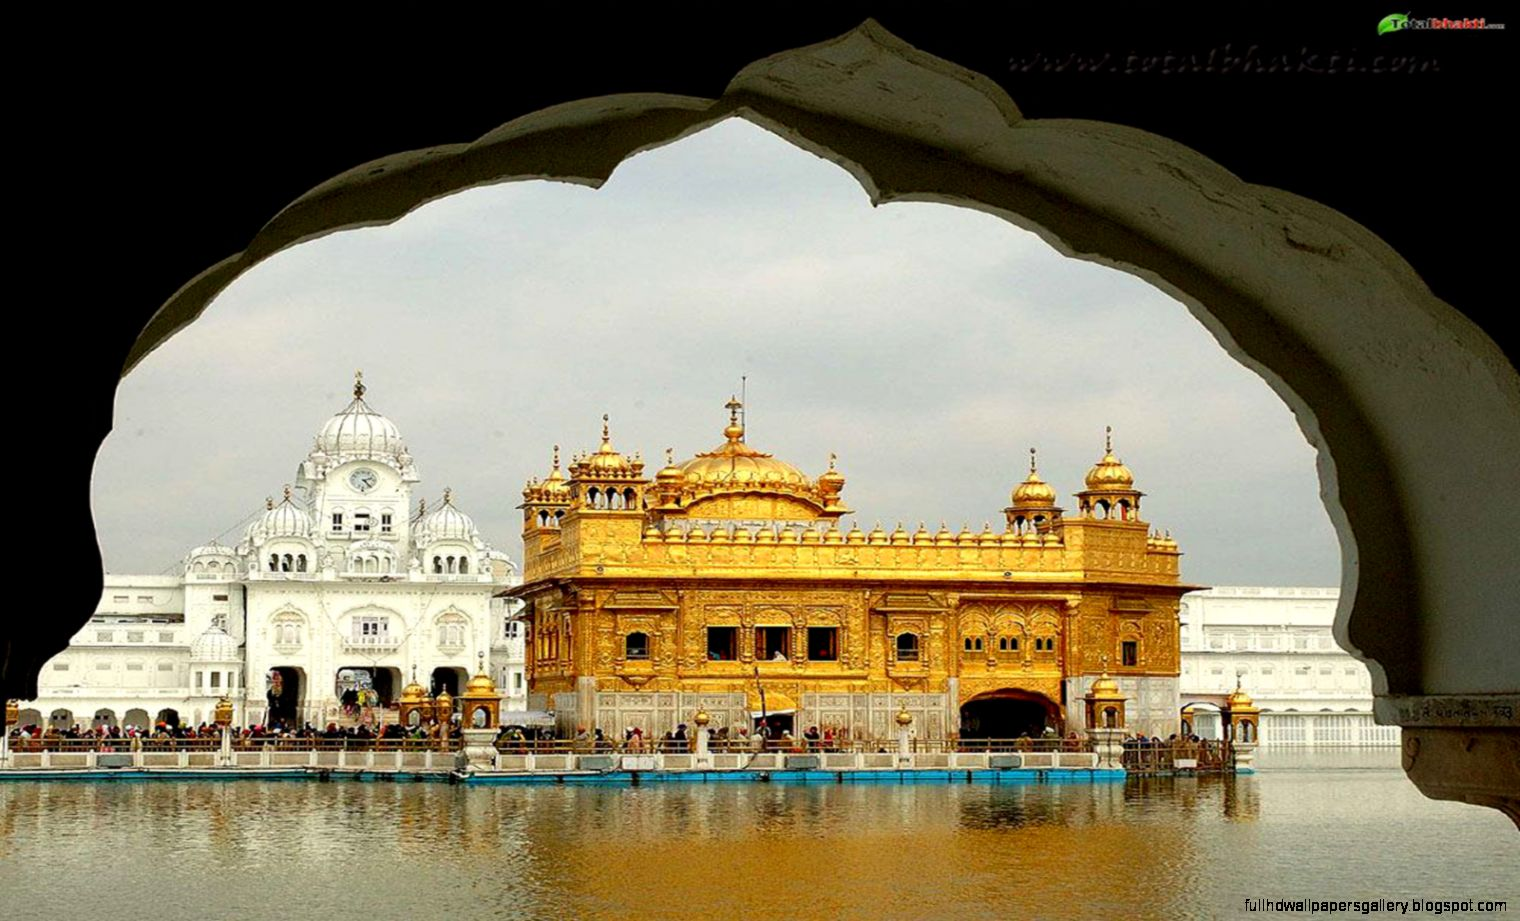 Golden Temple Amritsar Wallpaper | Full HD Wallpapers